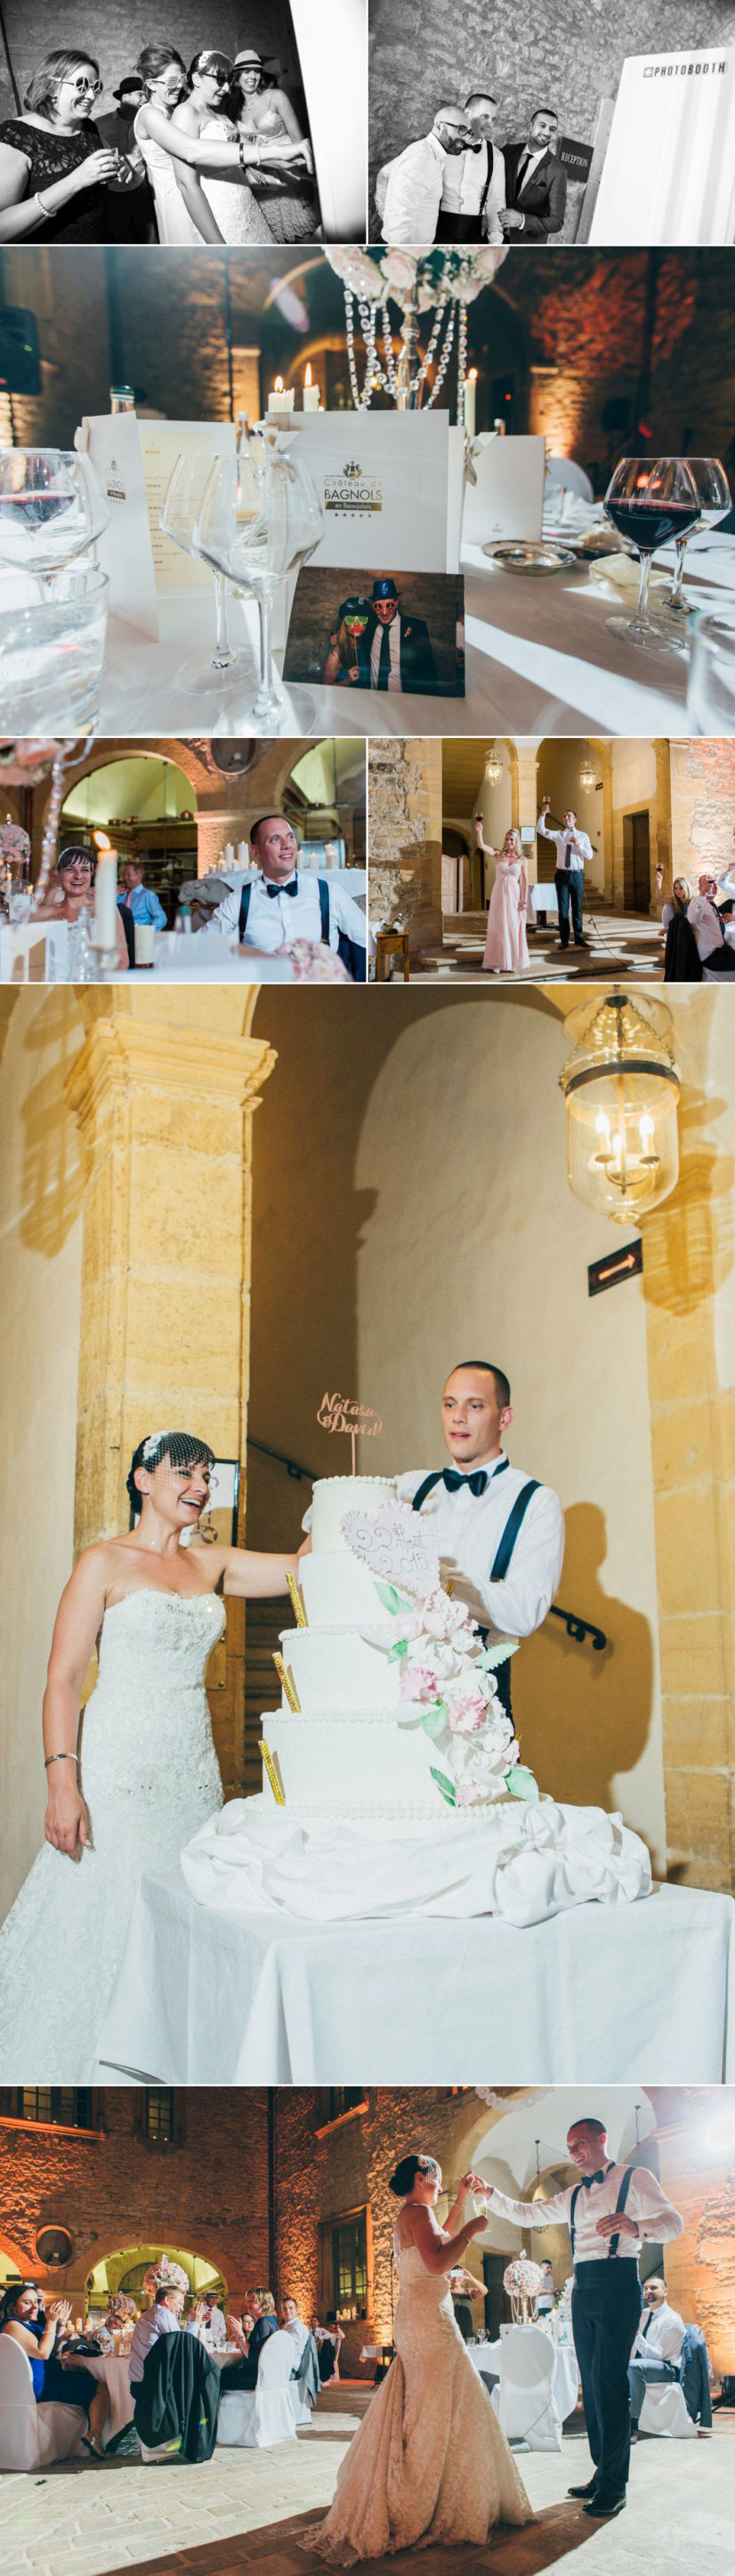 destination wedding france ©lasdecoeur Photo and video